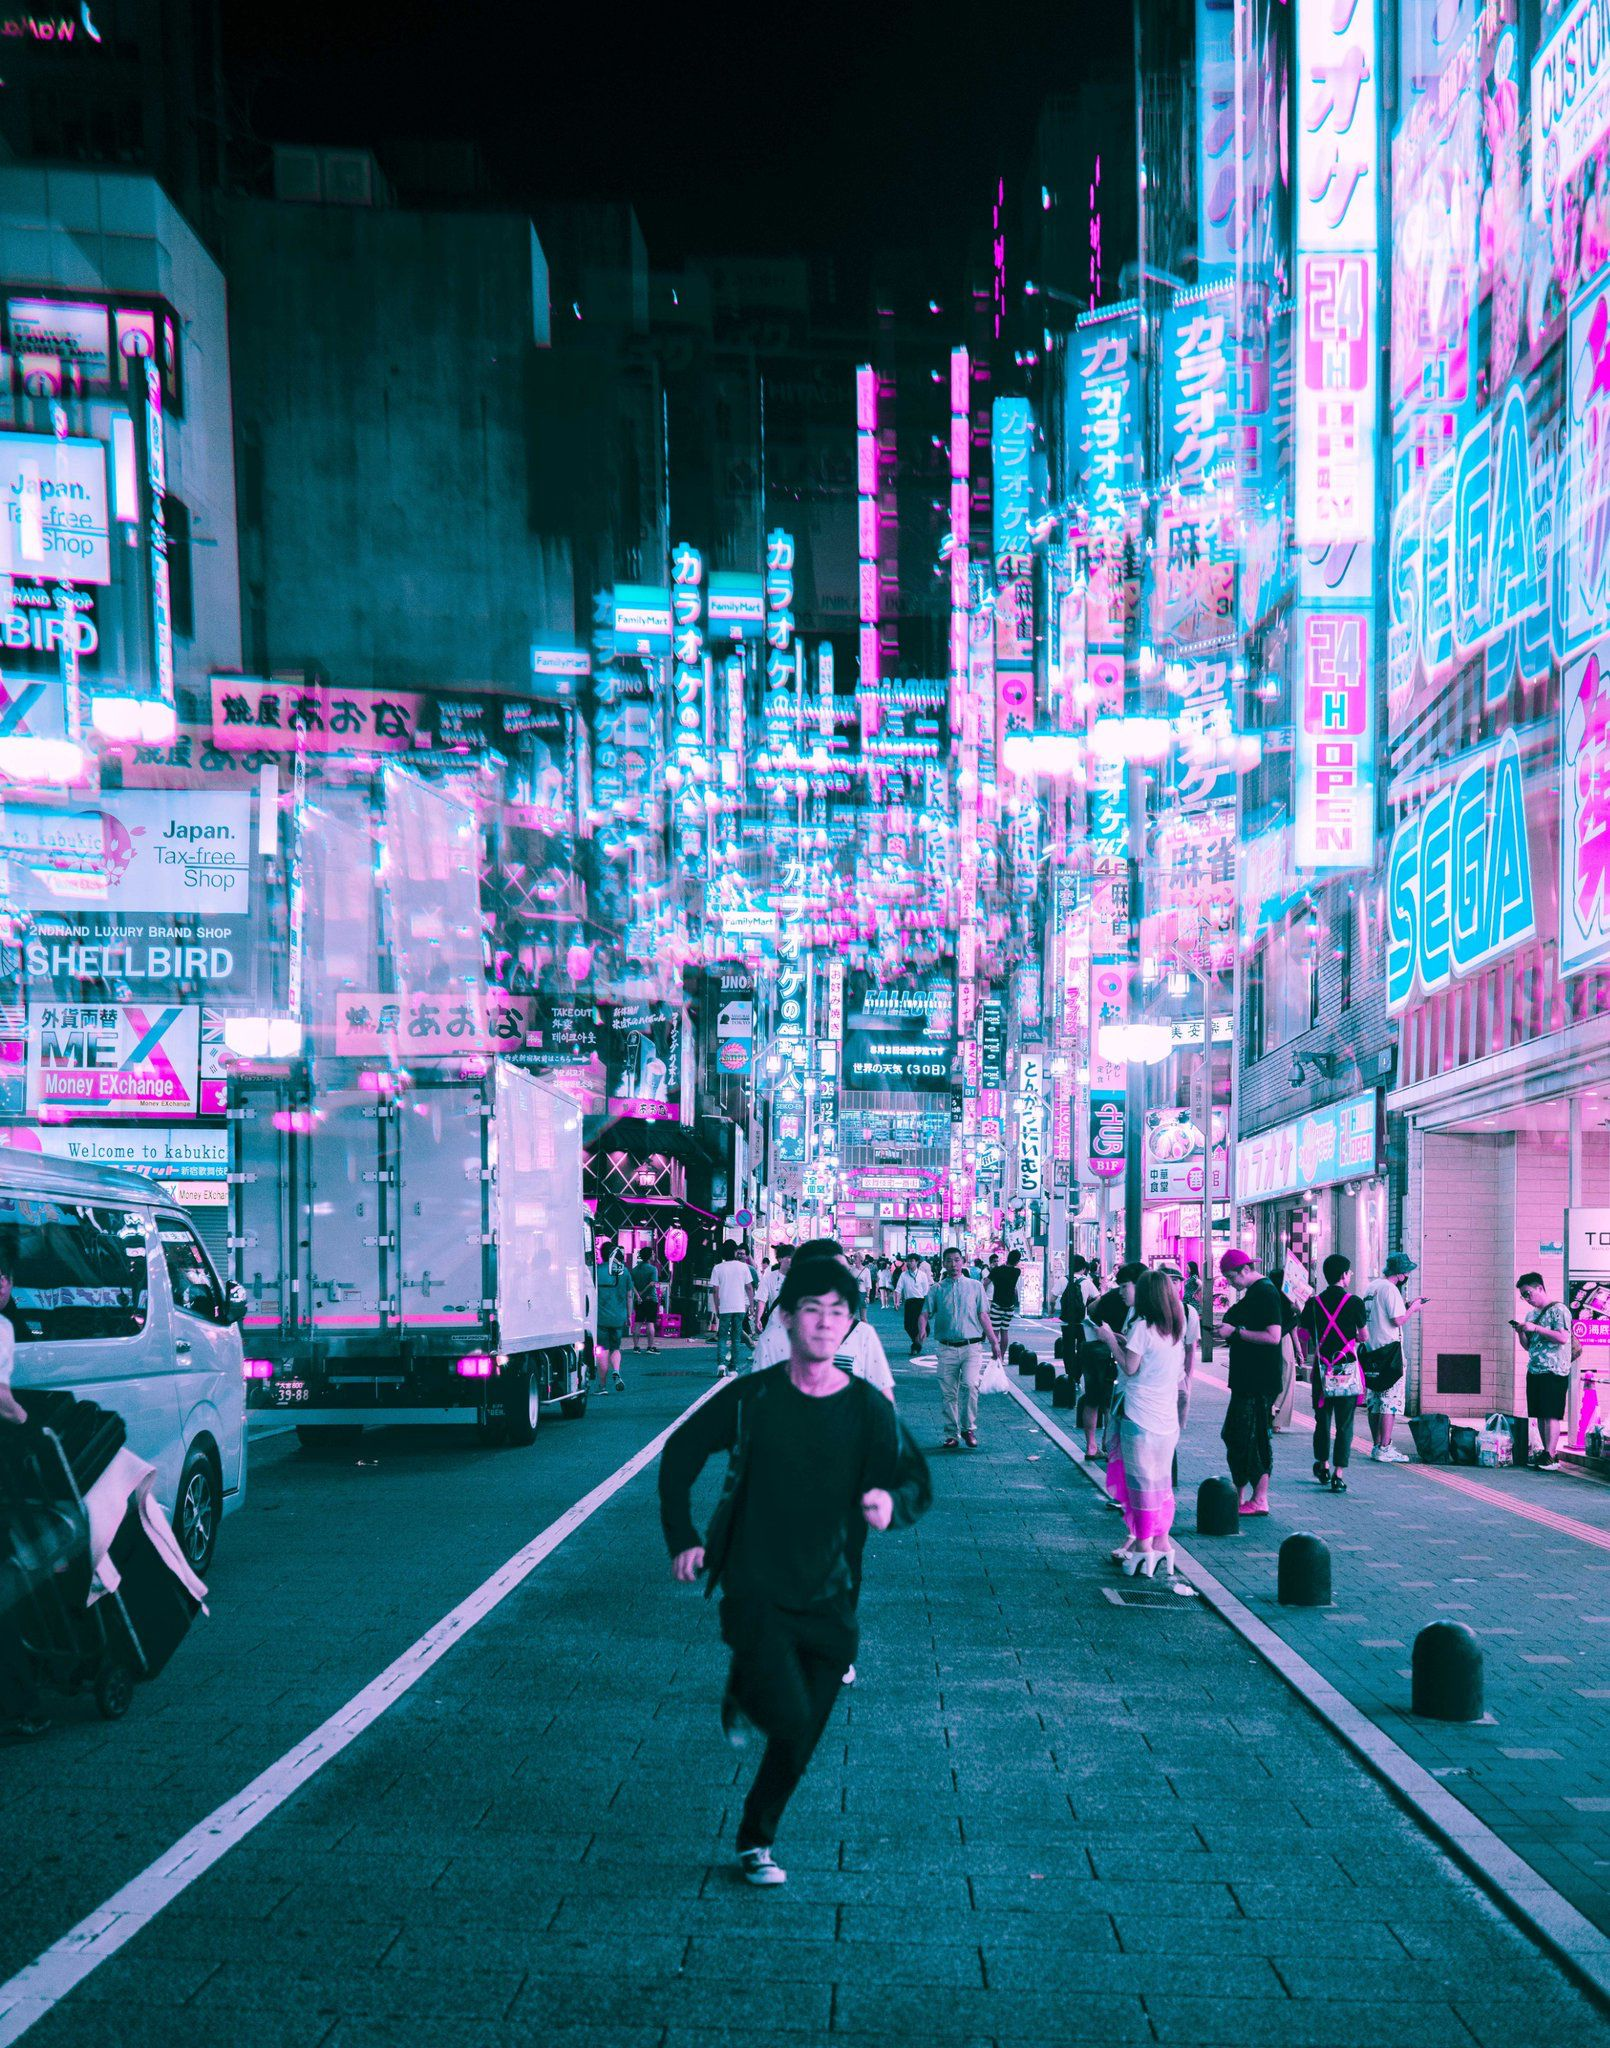 Image by darling me on background refs Cyberpunk aesthetic